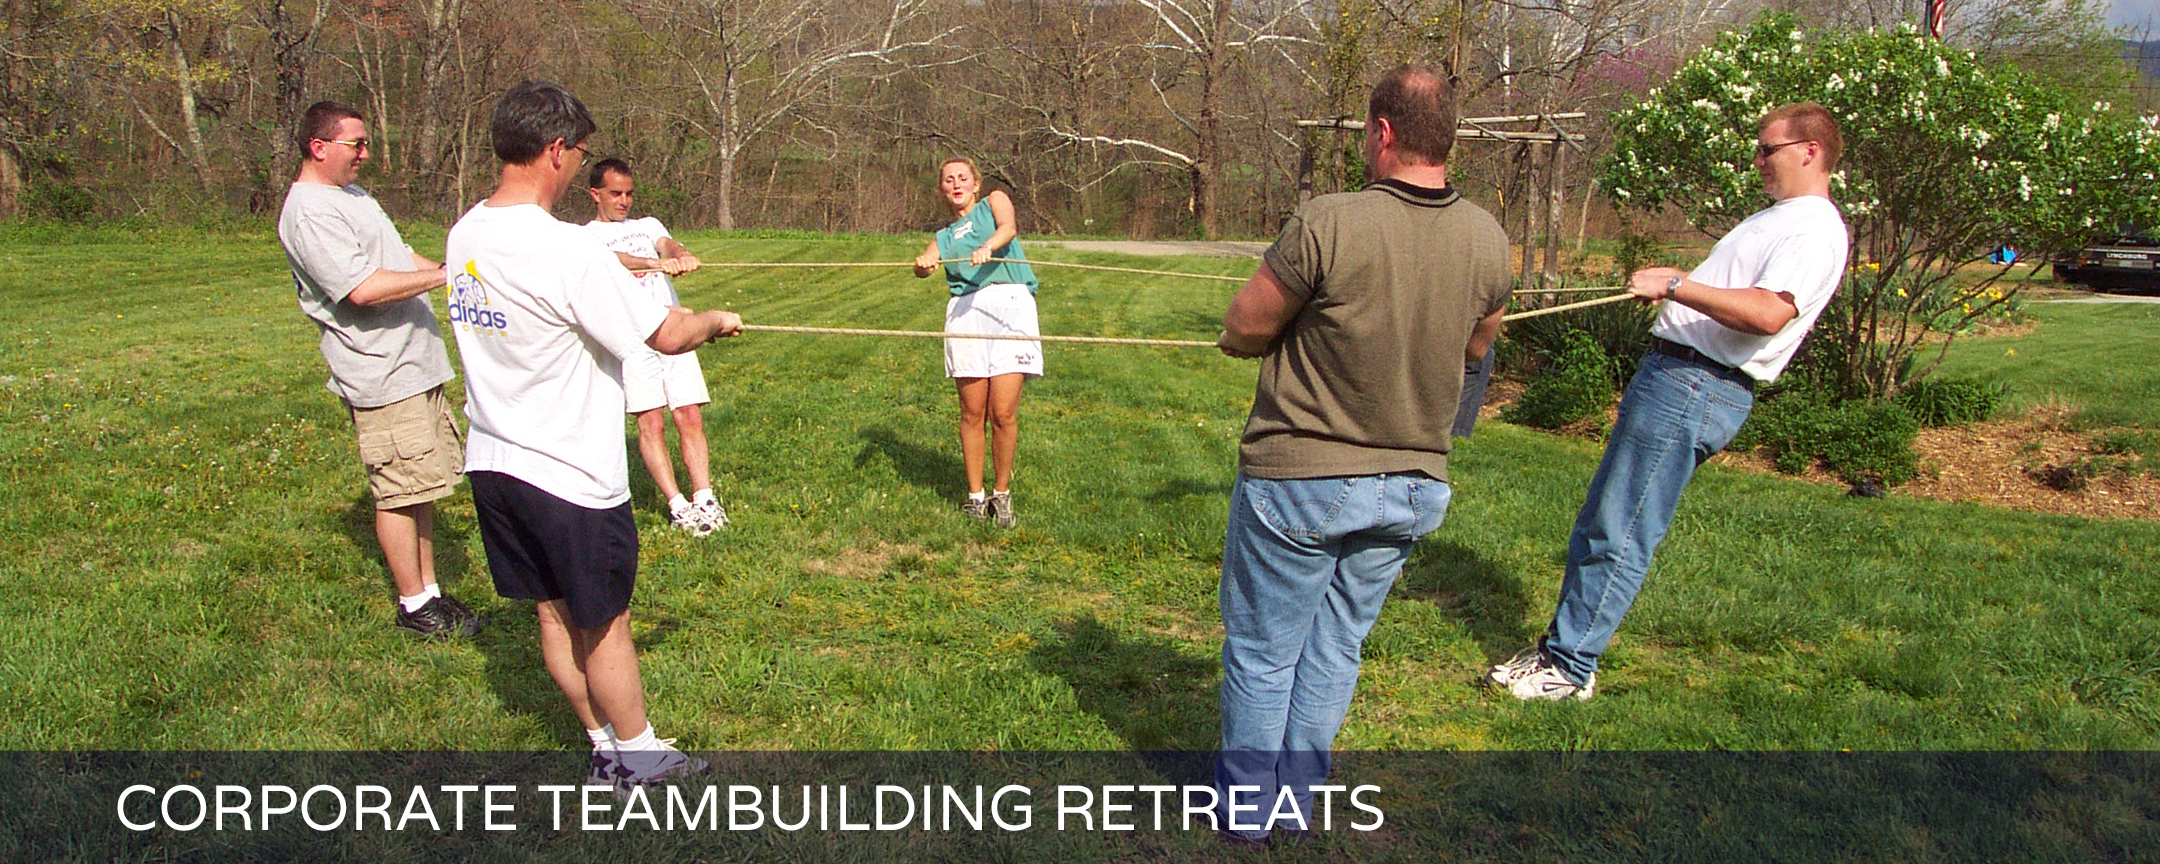 CORPORATE TEAMBUILDING EVENTS.jpg